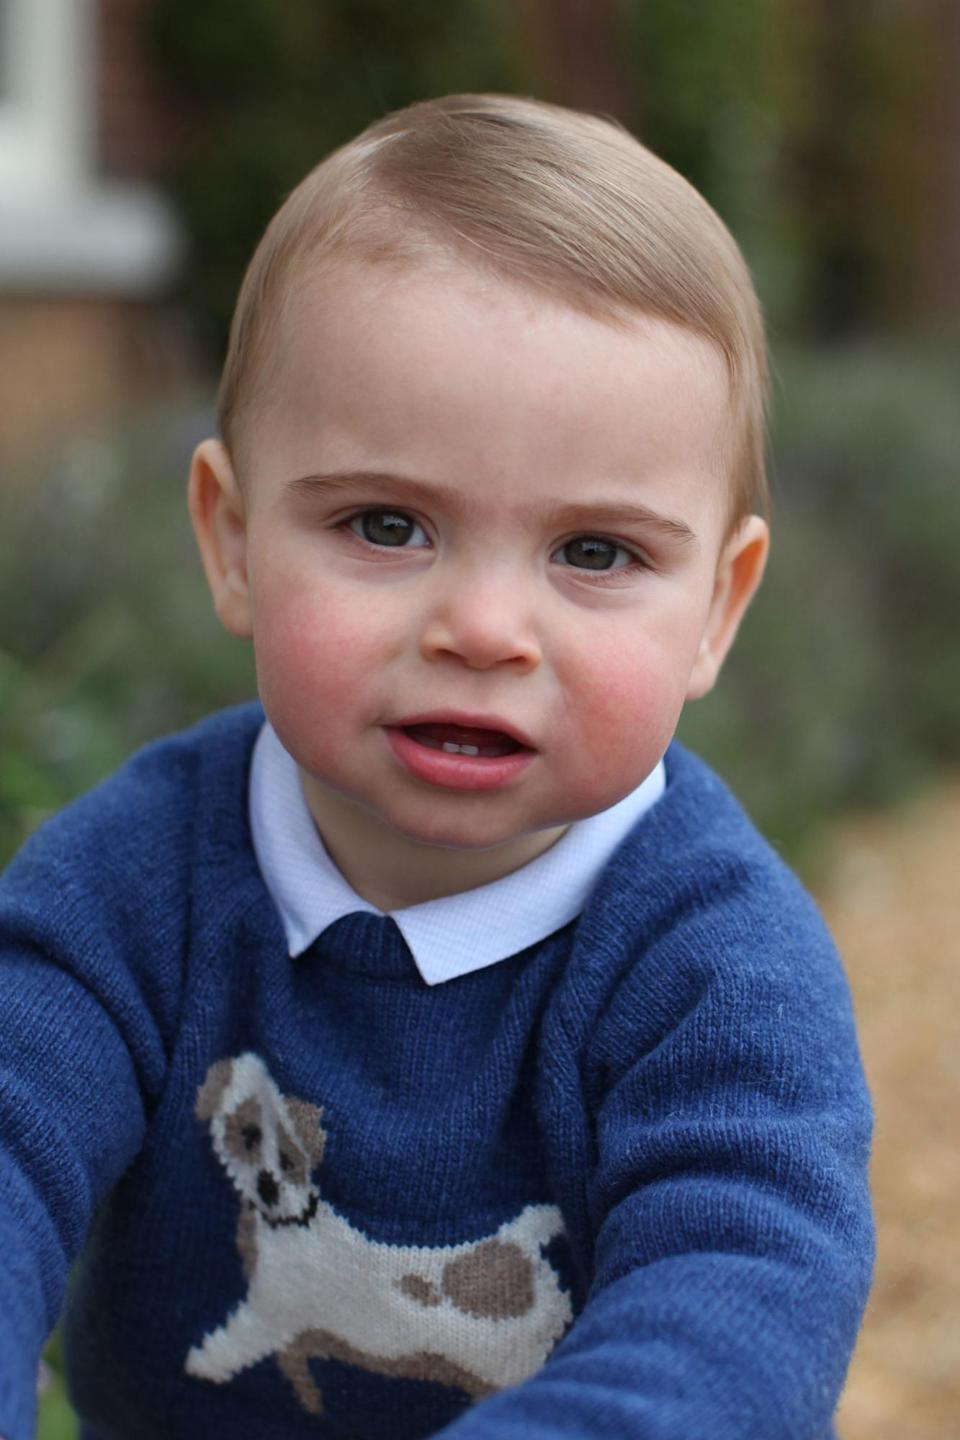 Prince Louis posed for his 1st birthday pictures with the blue Trotters jumper on. [Photo: AP]